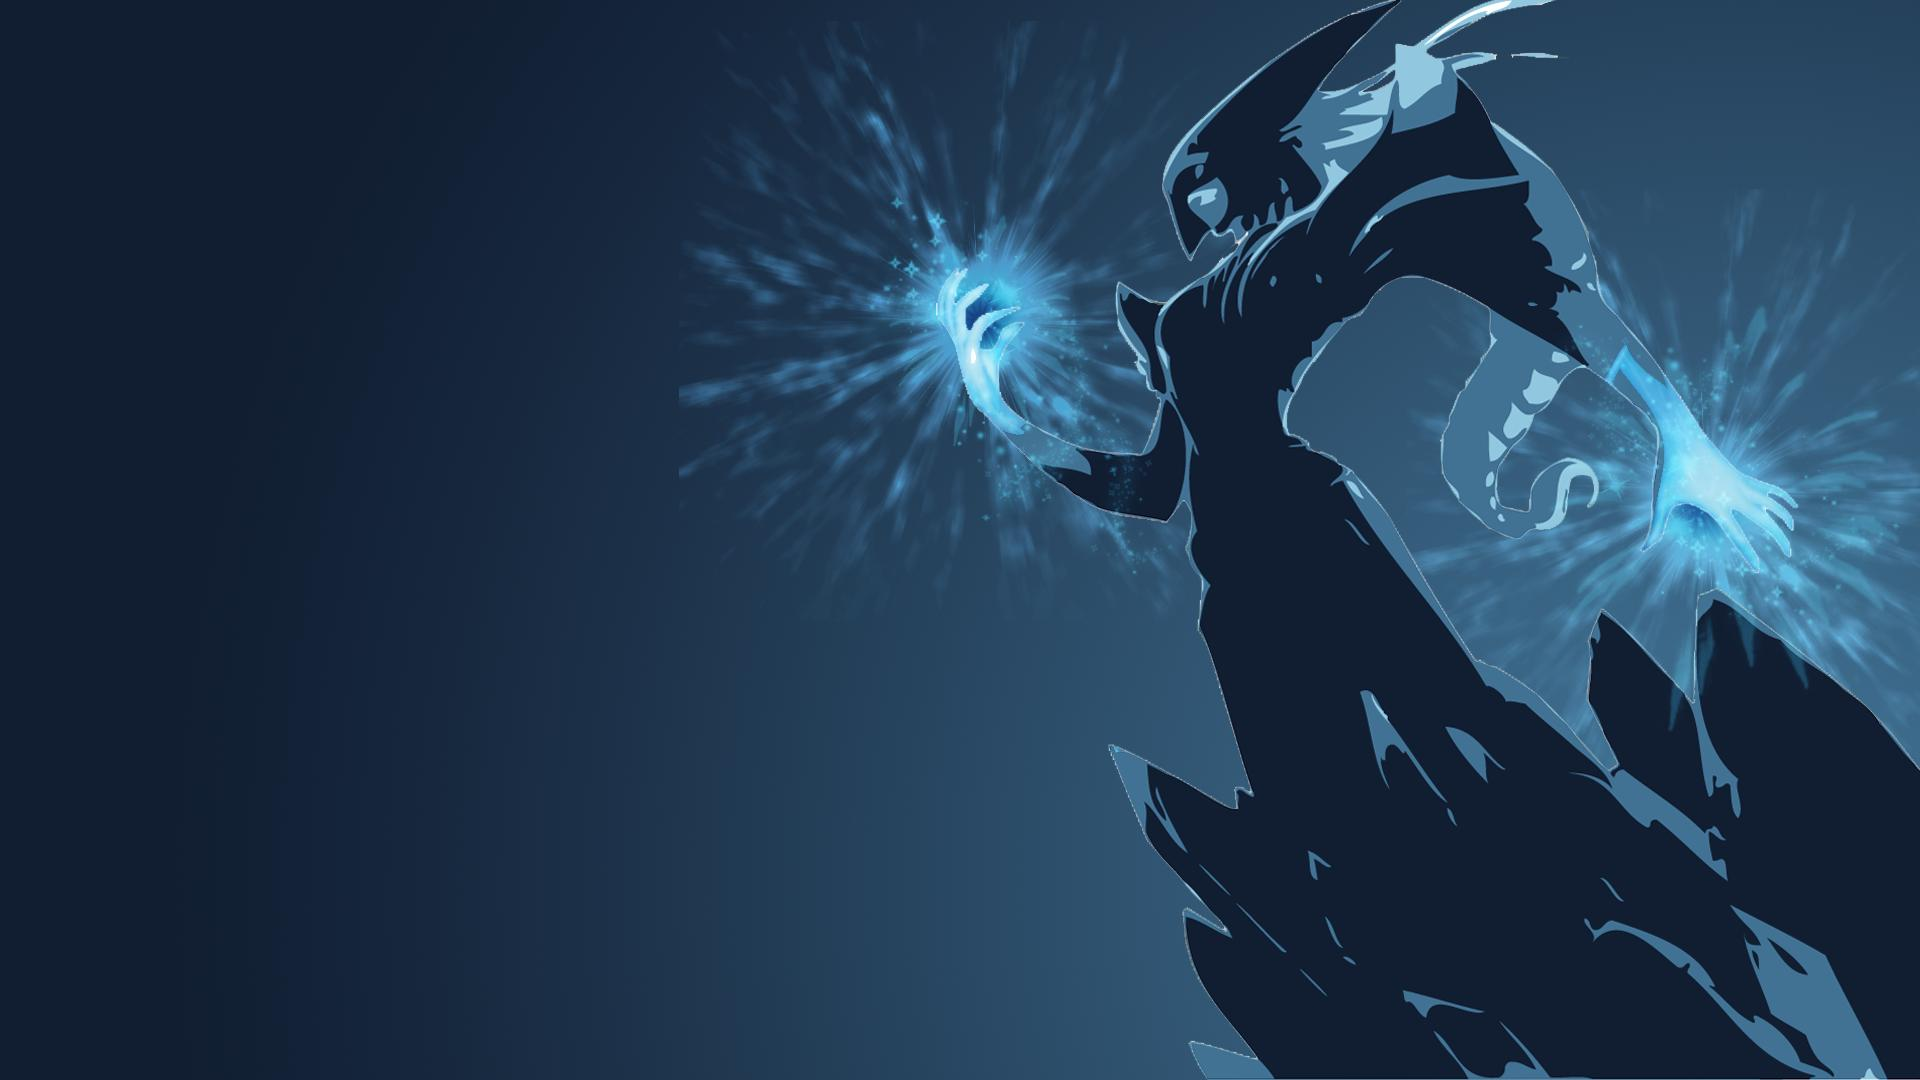 Lissandra Minimalistic Fan Art - League of Legends Wallpapers